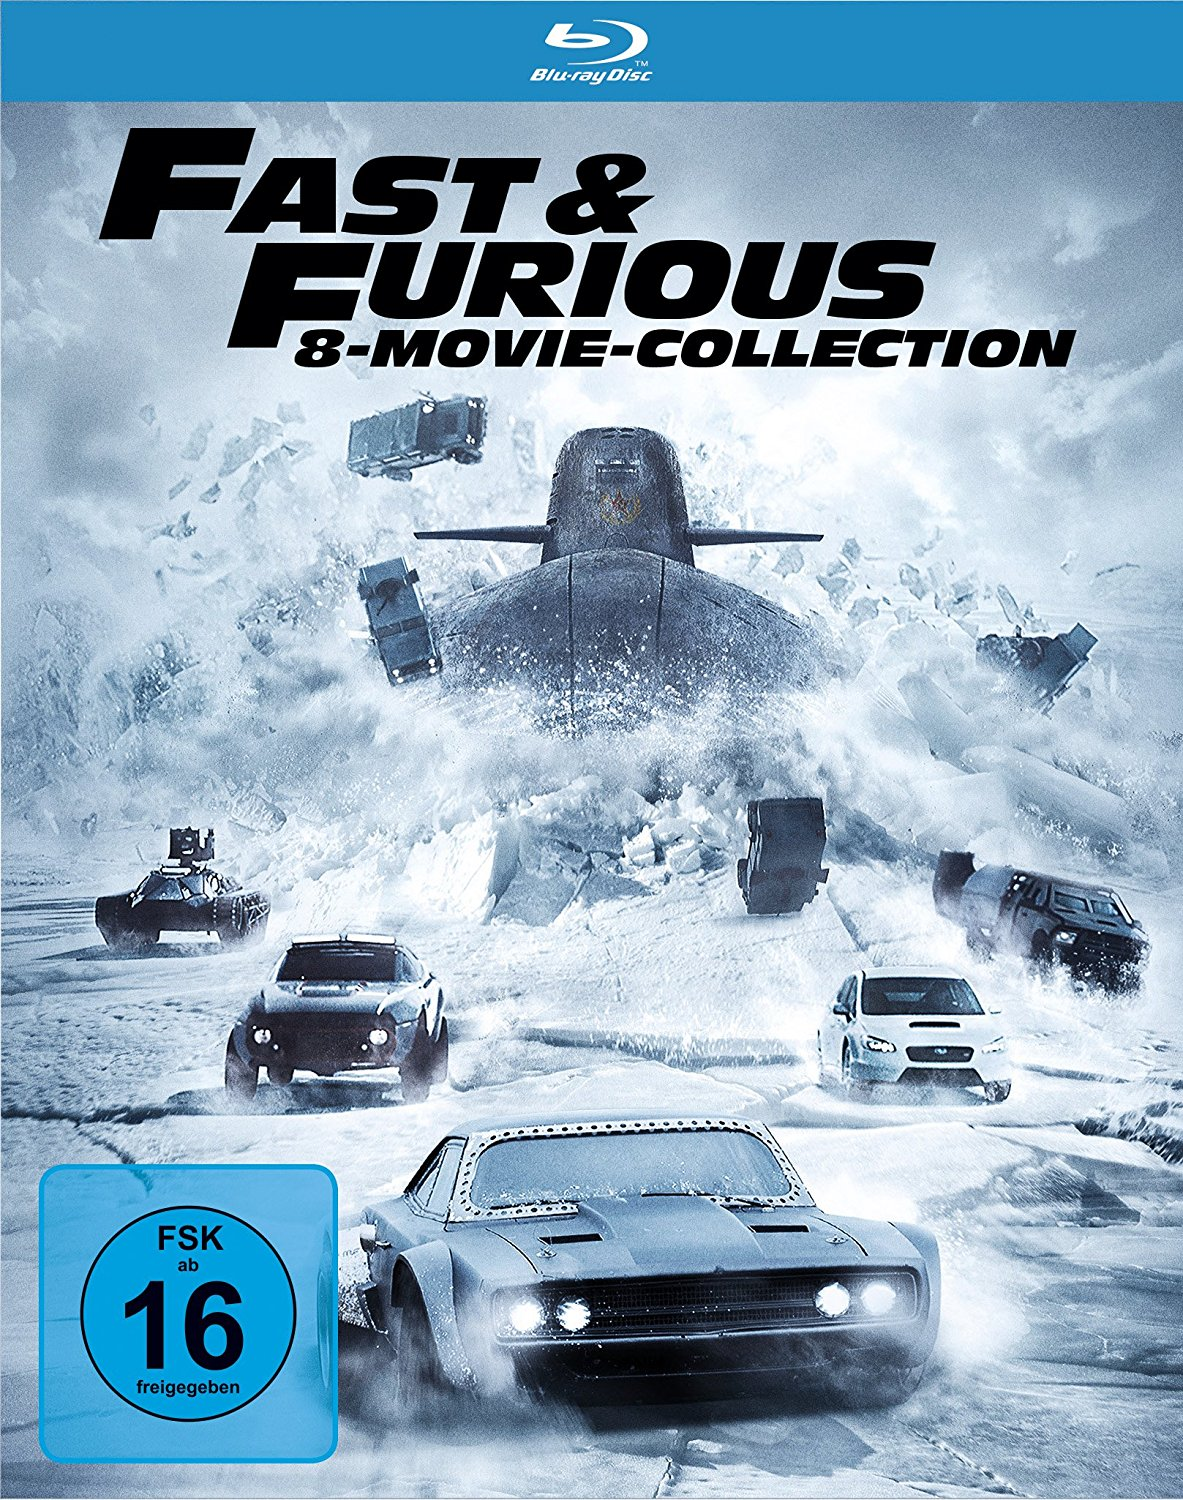 alphamovies fast furious 8 movie collection blu ray. Black Bedroom Furniture Sets. Home Design Ideas